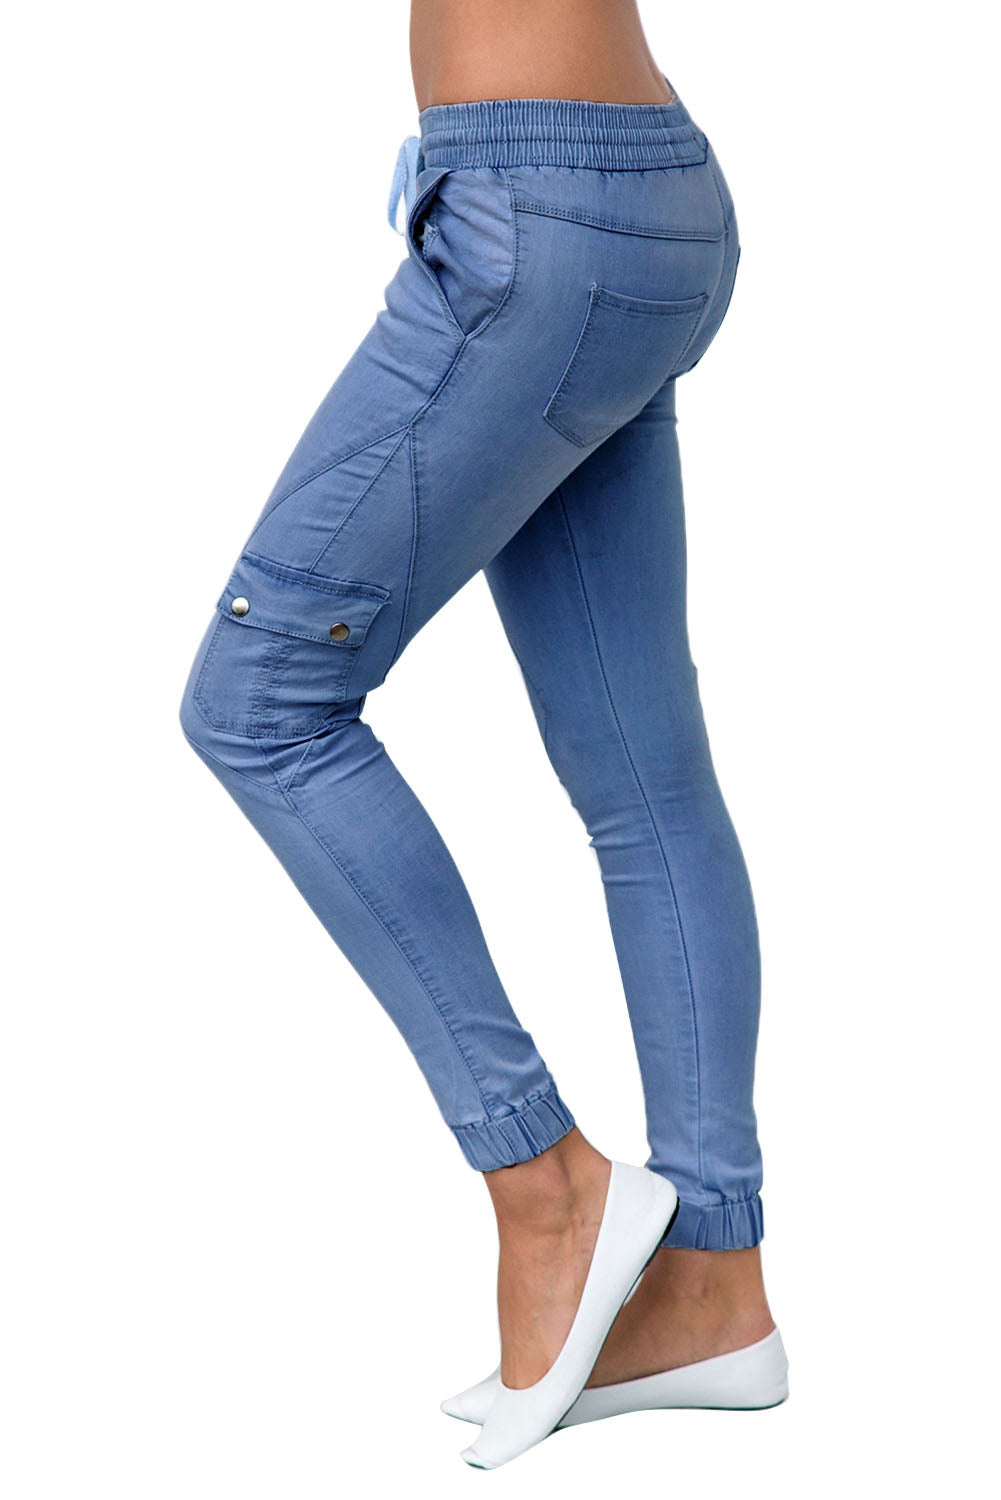 Dusty Blue Elastic Waist Pocket Denim Jeans